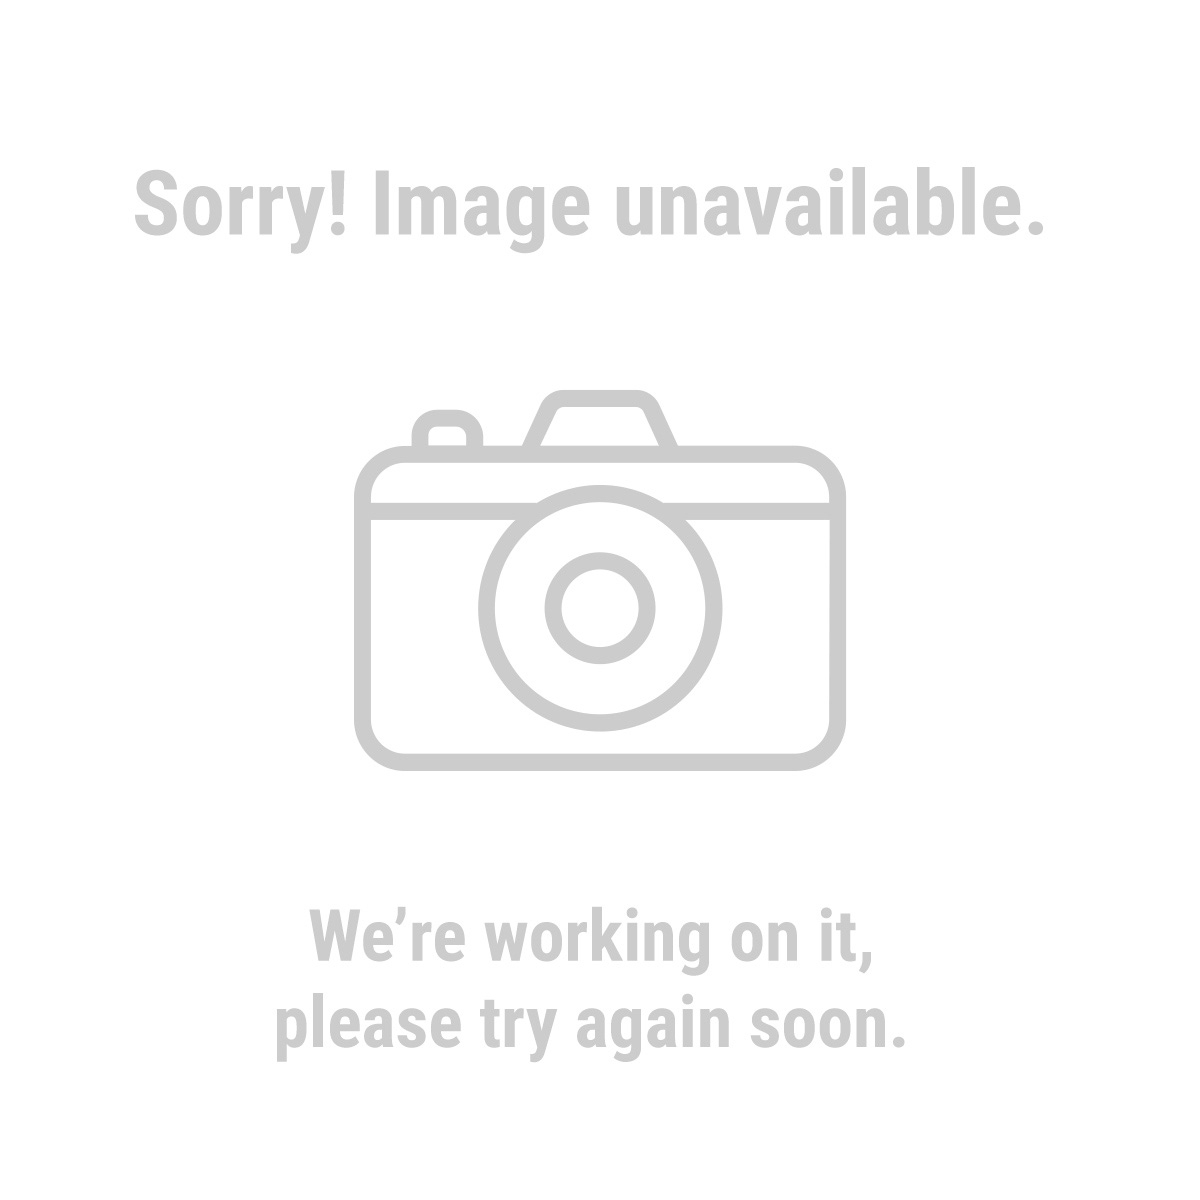 66114 5 Piece Brass Wheel and Brush Set